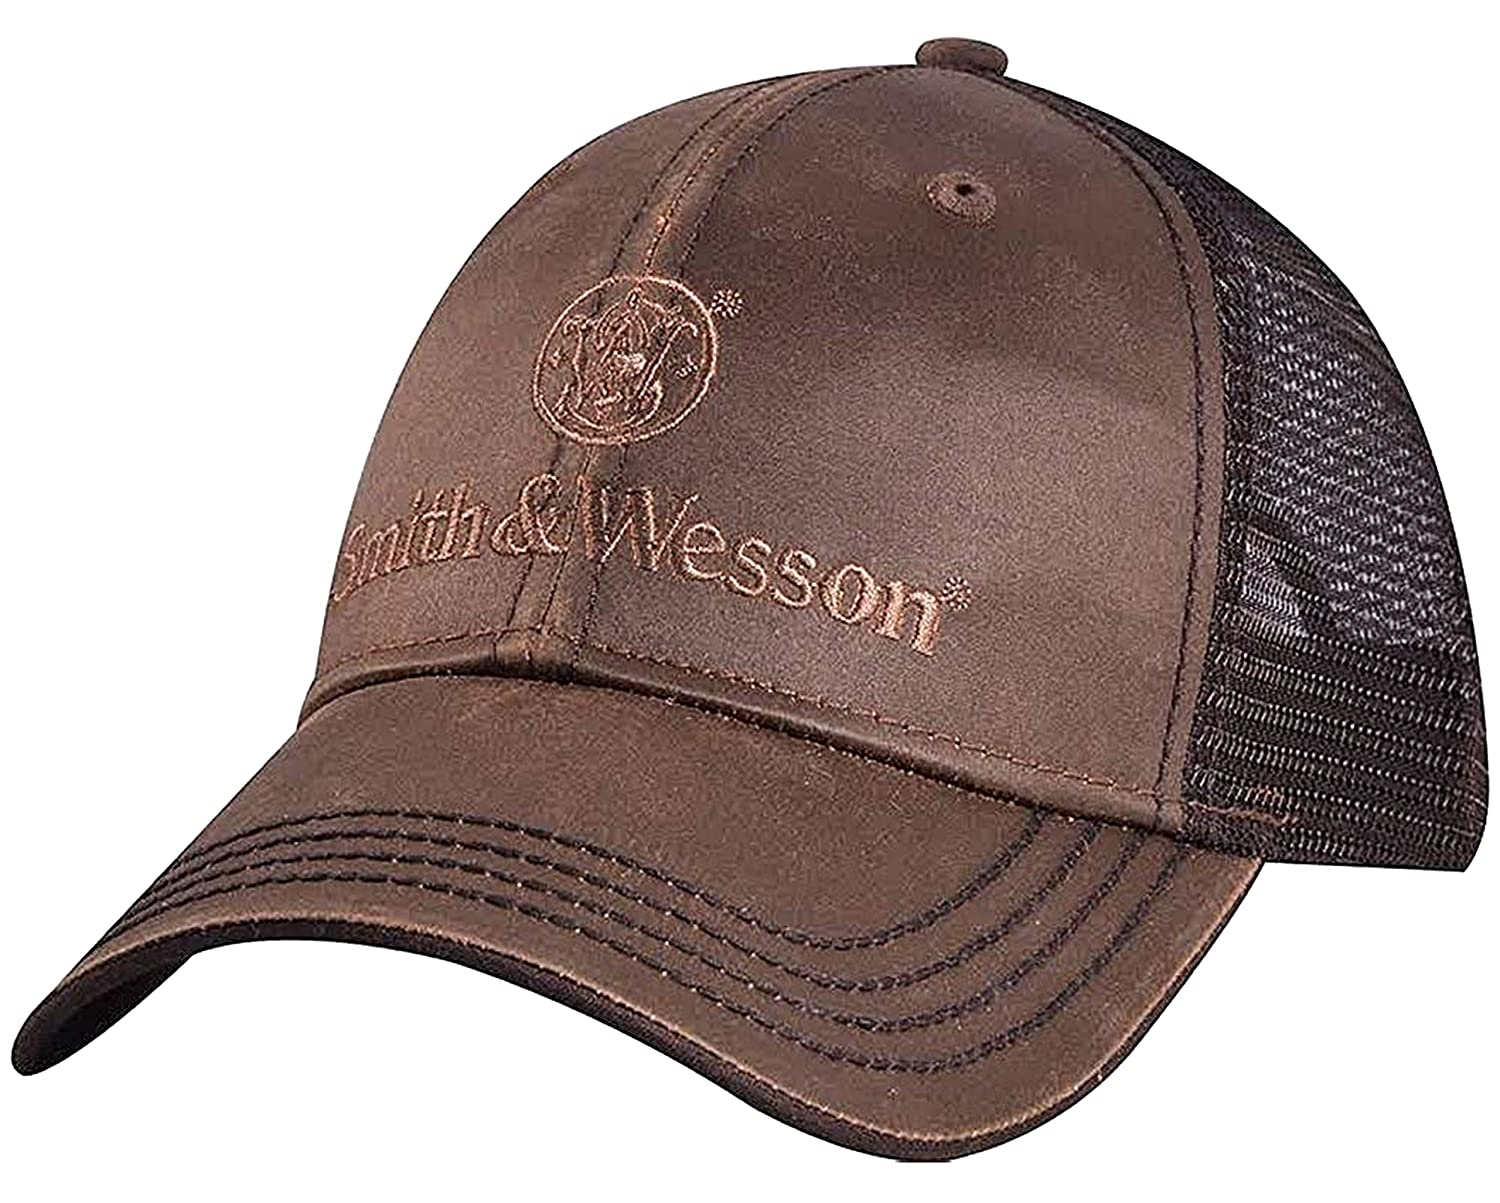 Smith /& Wesson Oilskin Mesh Backed Hat Brown